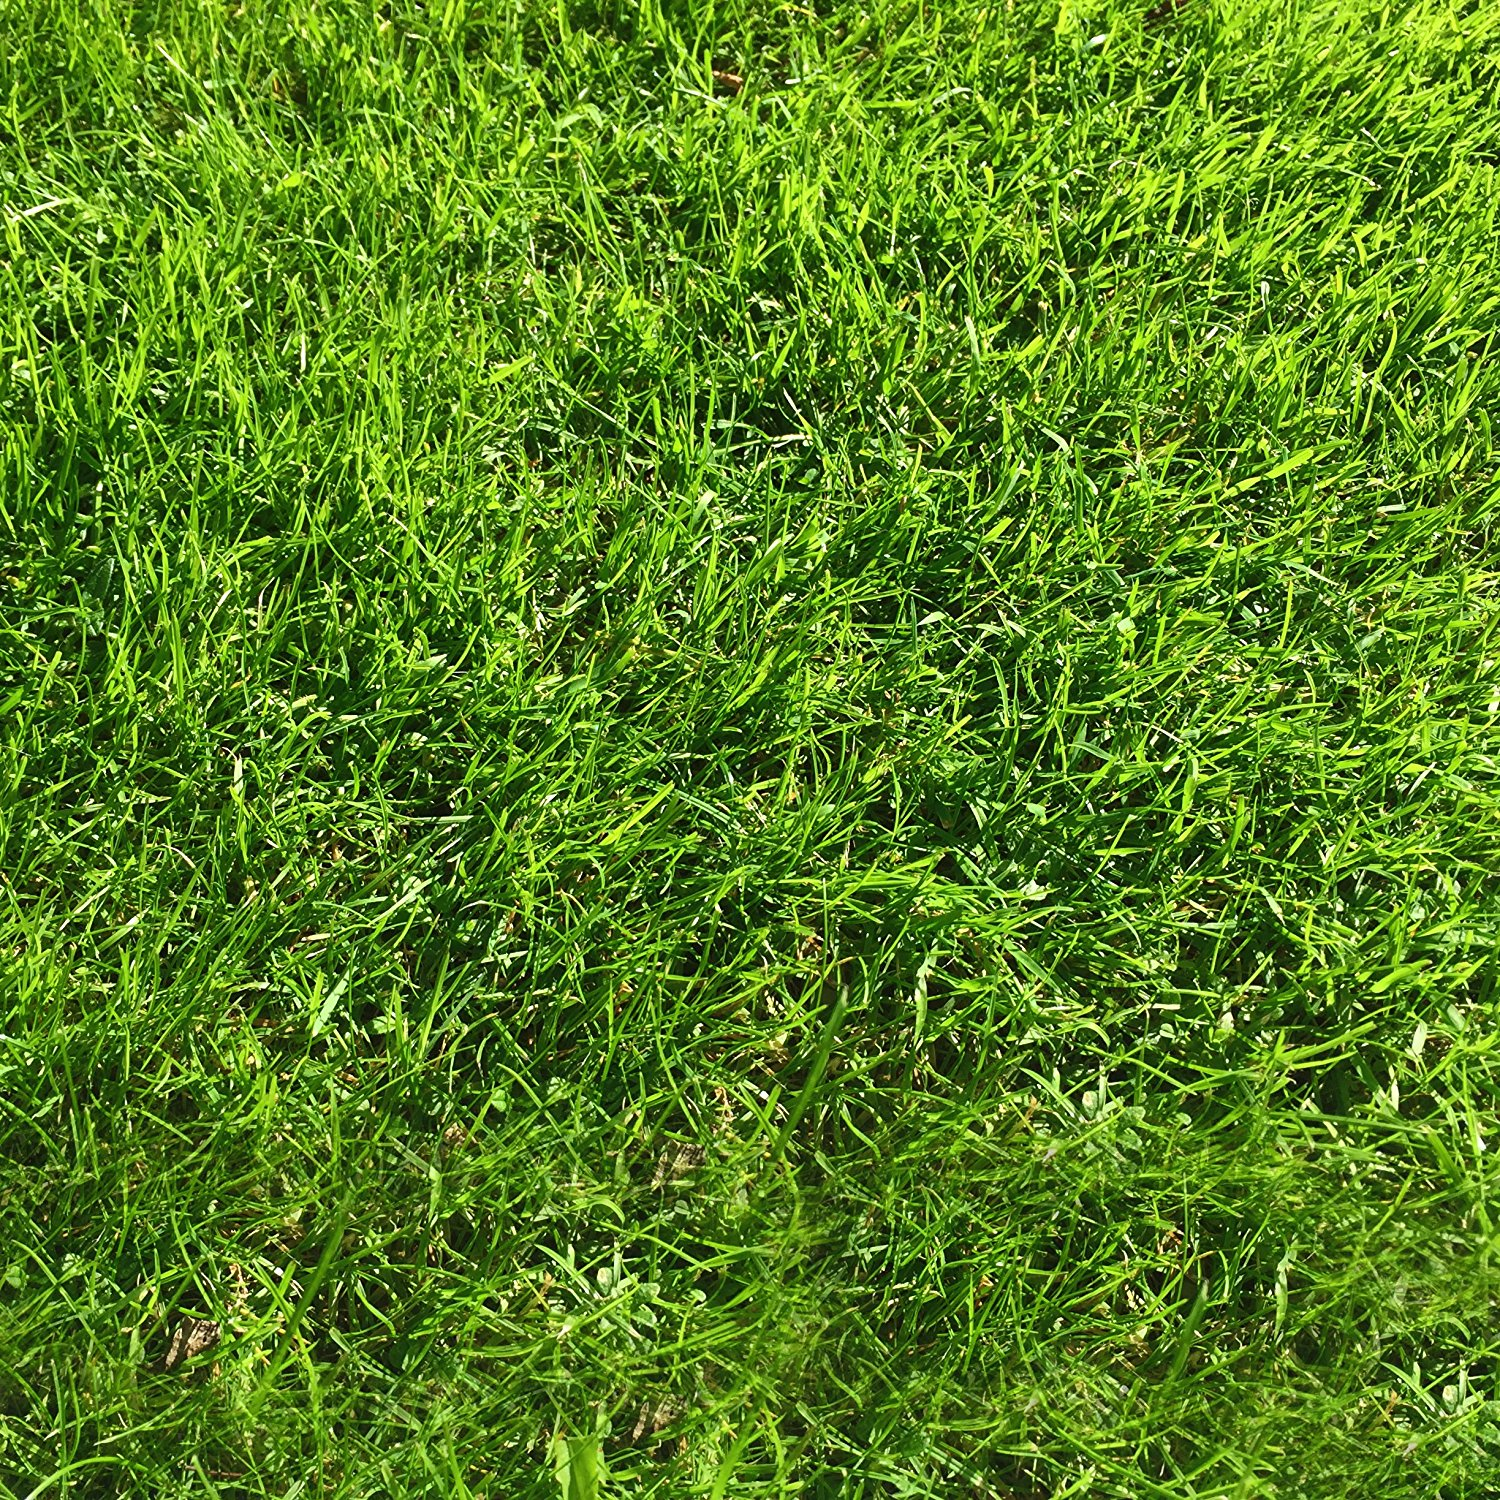 1 kg Grass Seed Covers 35 sqm (380 sq ft) - Premium Quality Seed ...